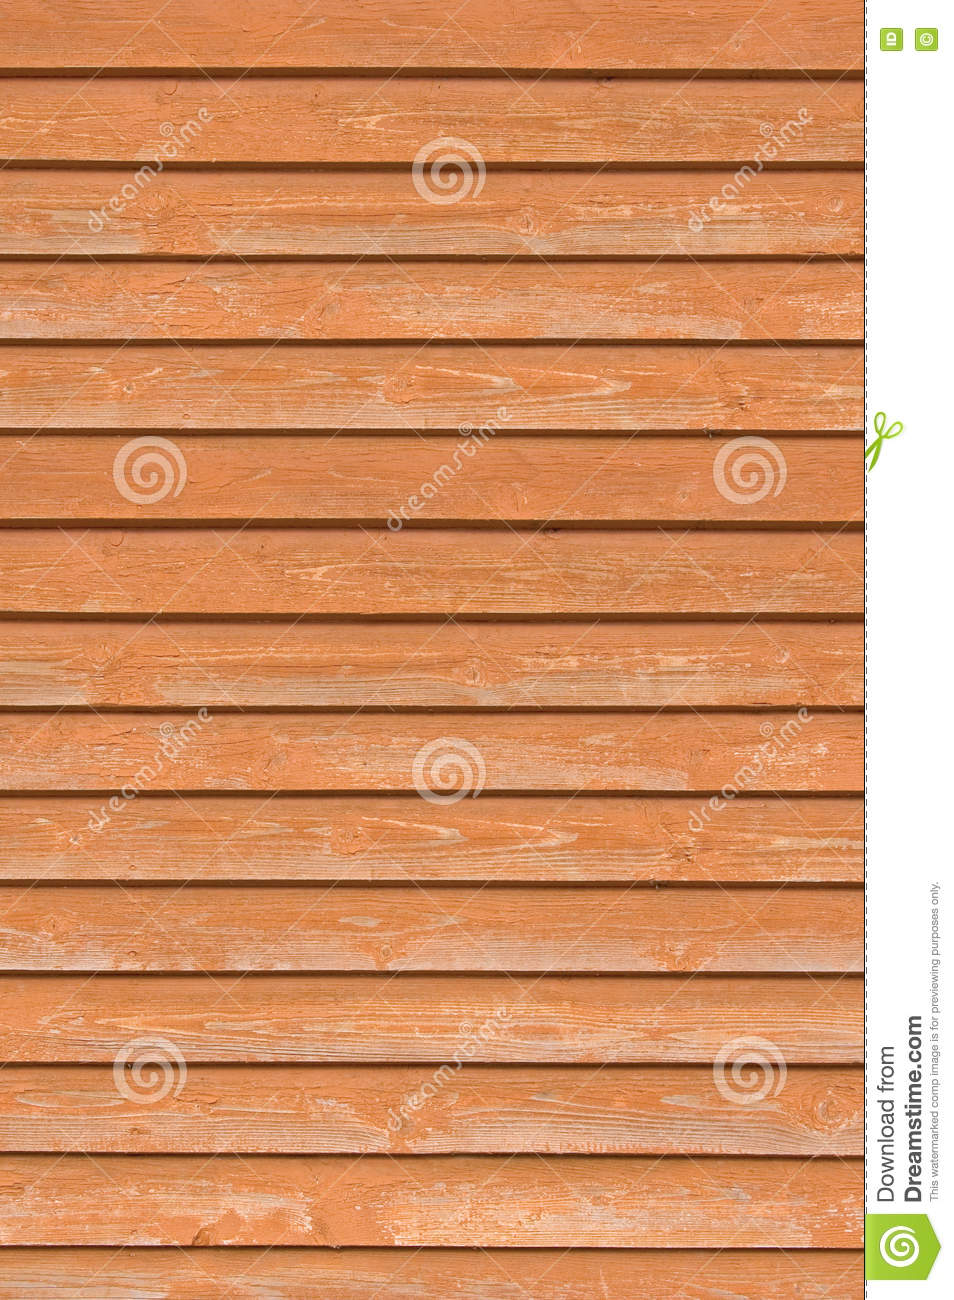 Natural old wood fence wall planks, wooden close board texture, vertical overlapping reddish brown closeboard terracotta rustic